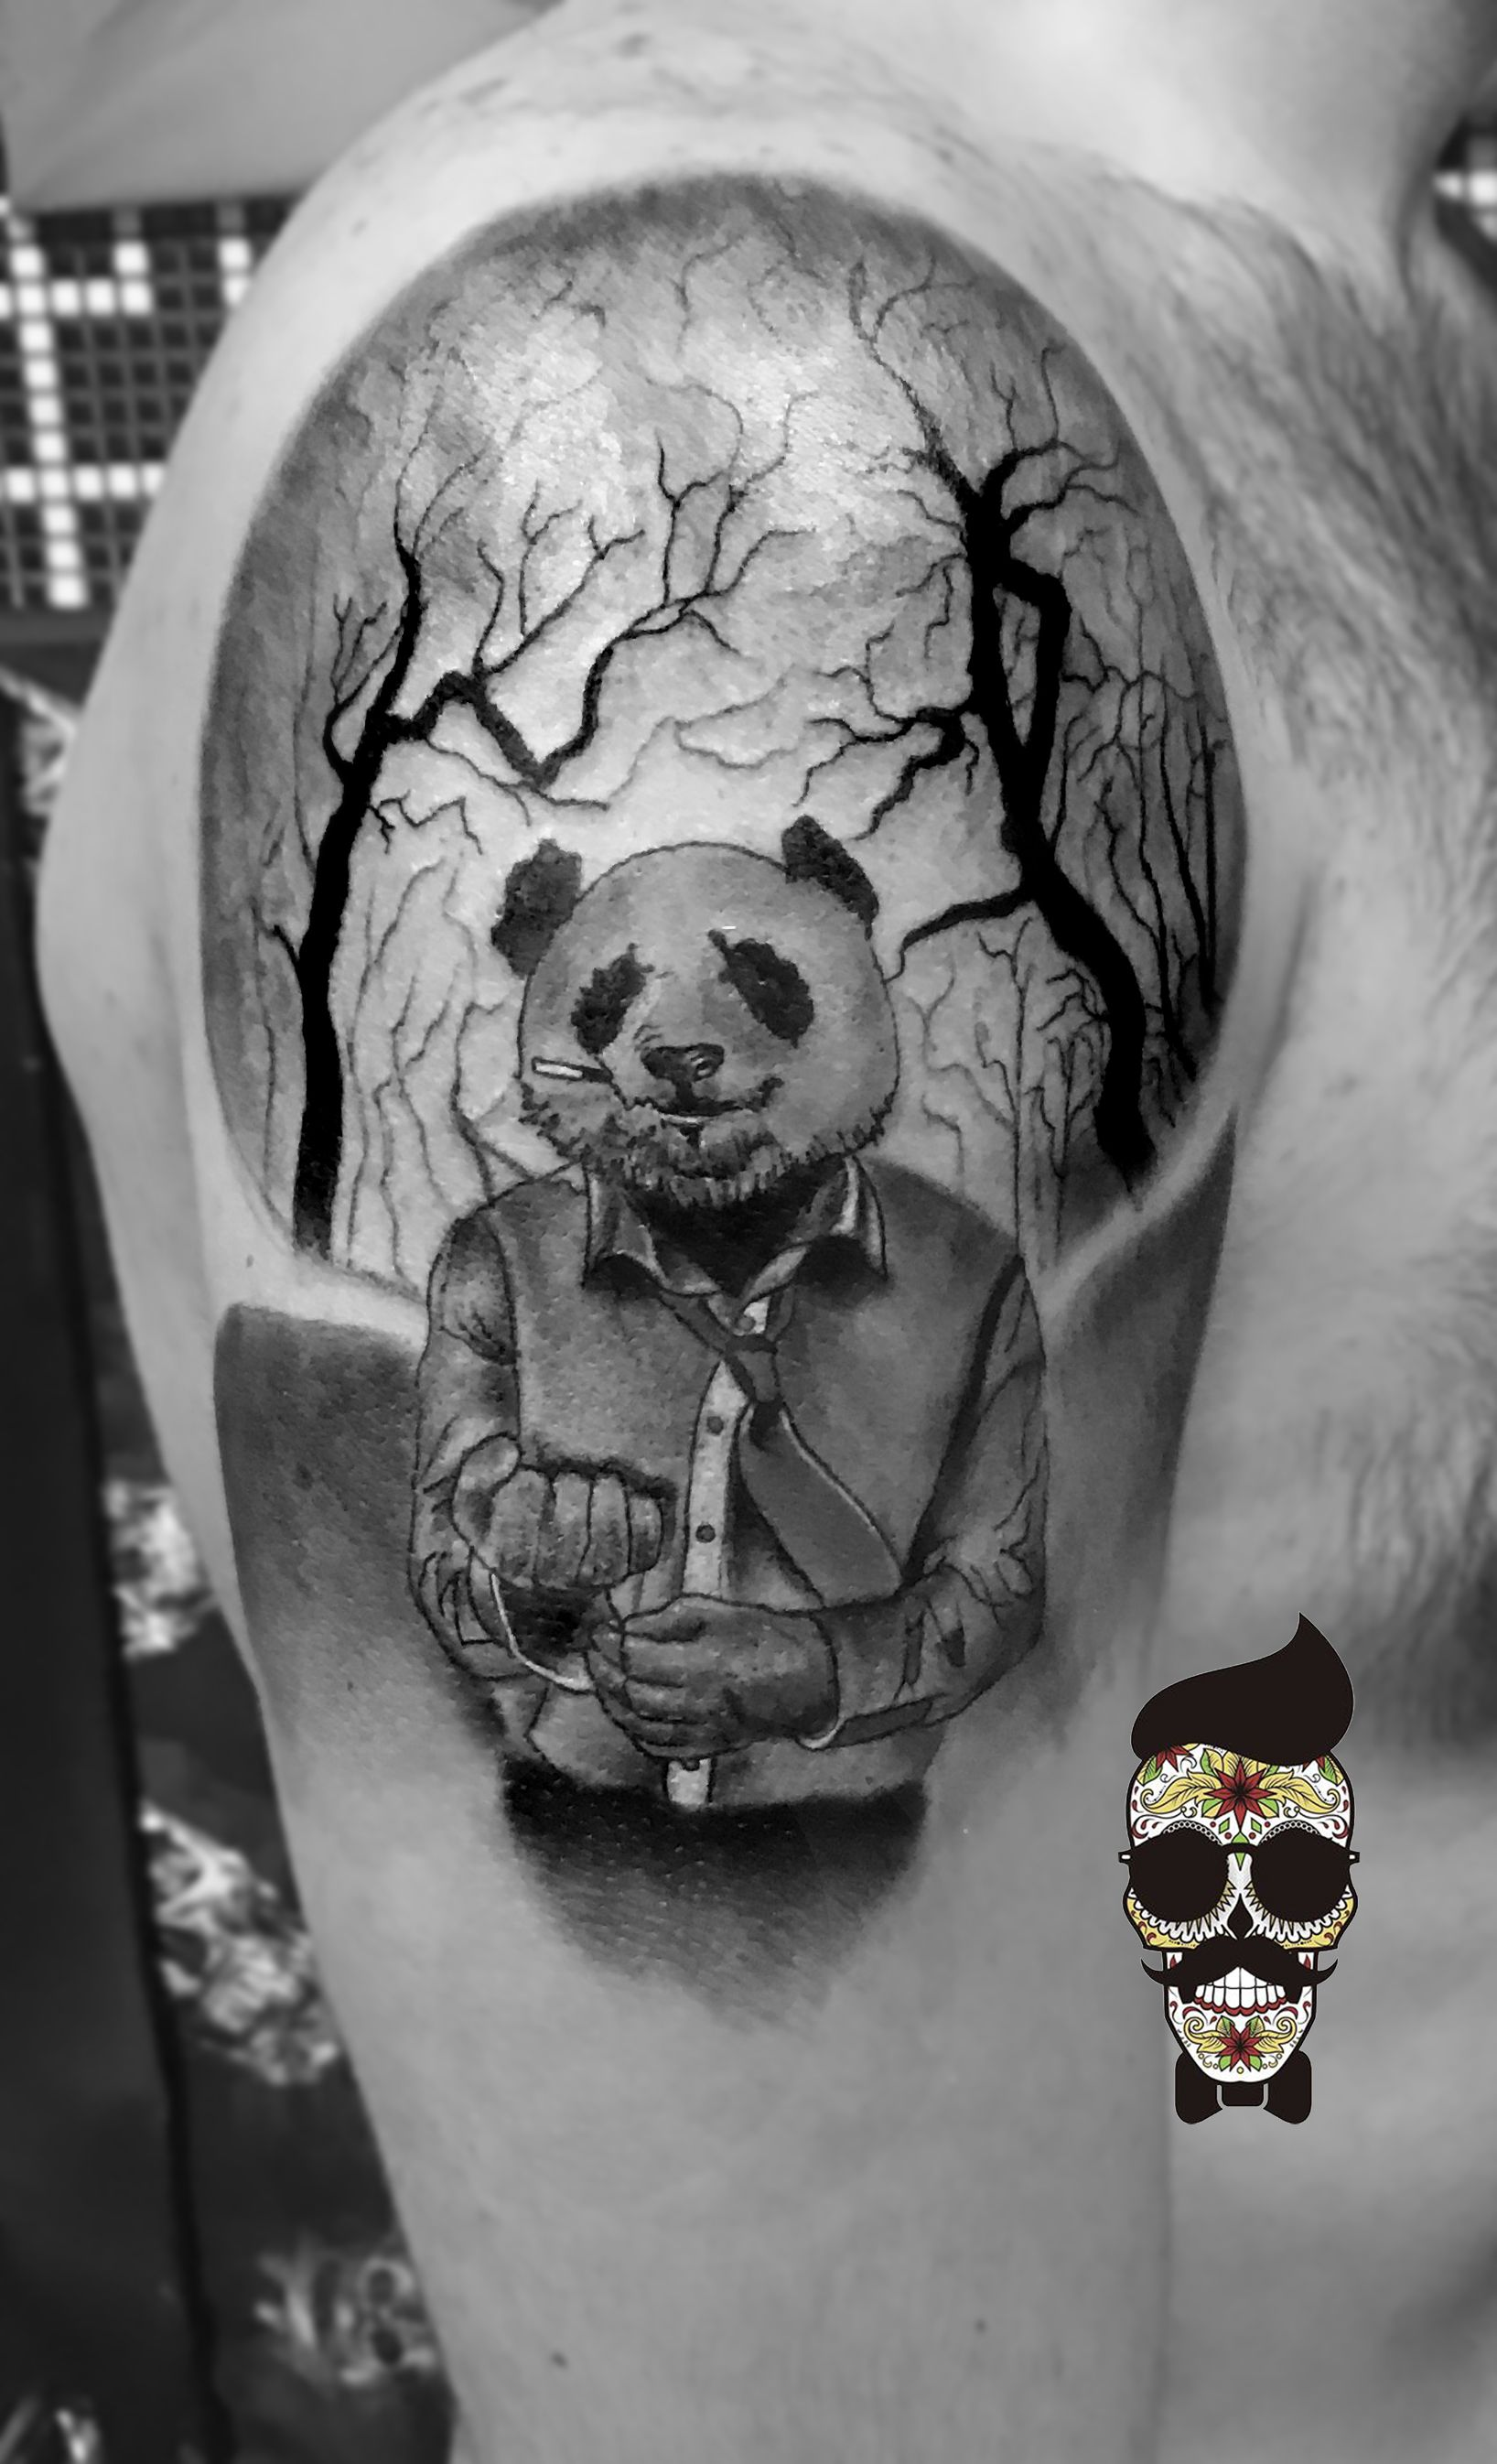 Tattoo Arte Leon Telefono Panda Tattoo Tree Tattoo Futuros Tatuajes Tattoos Calf